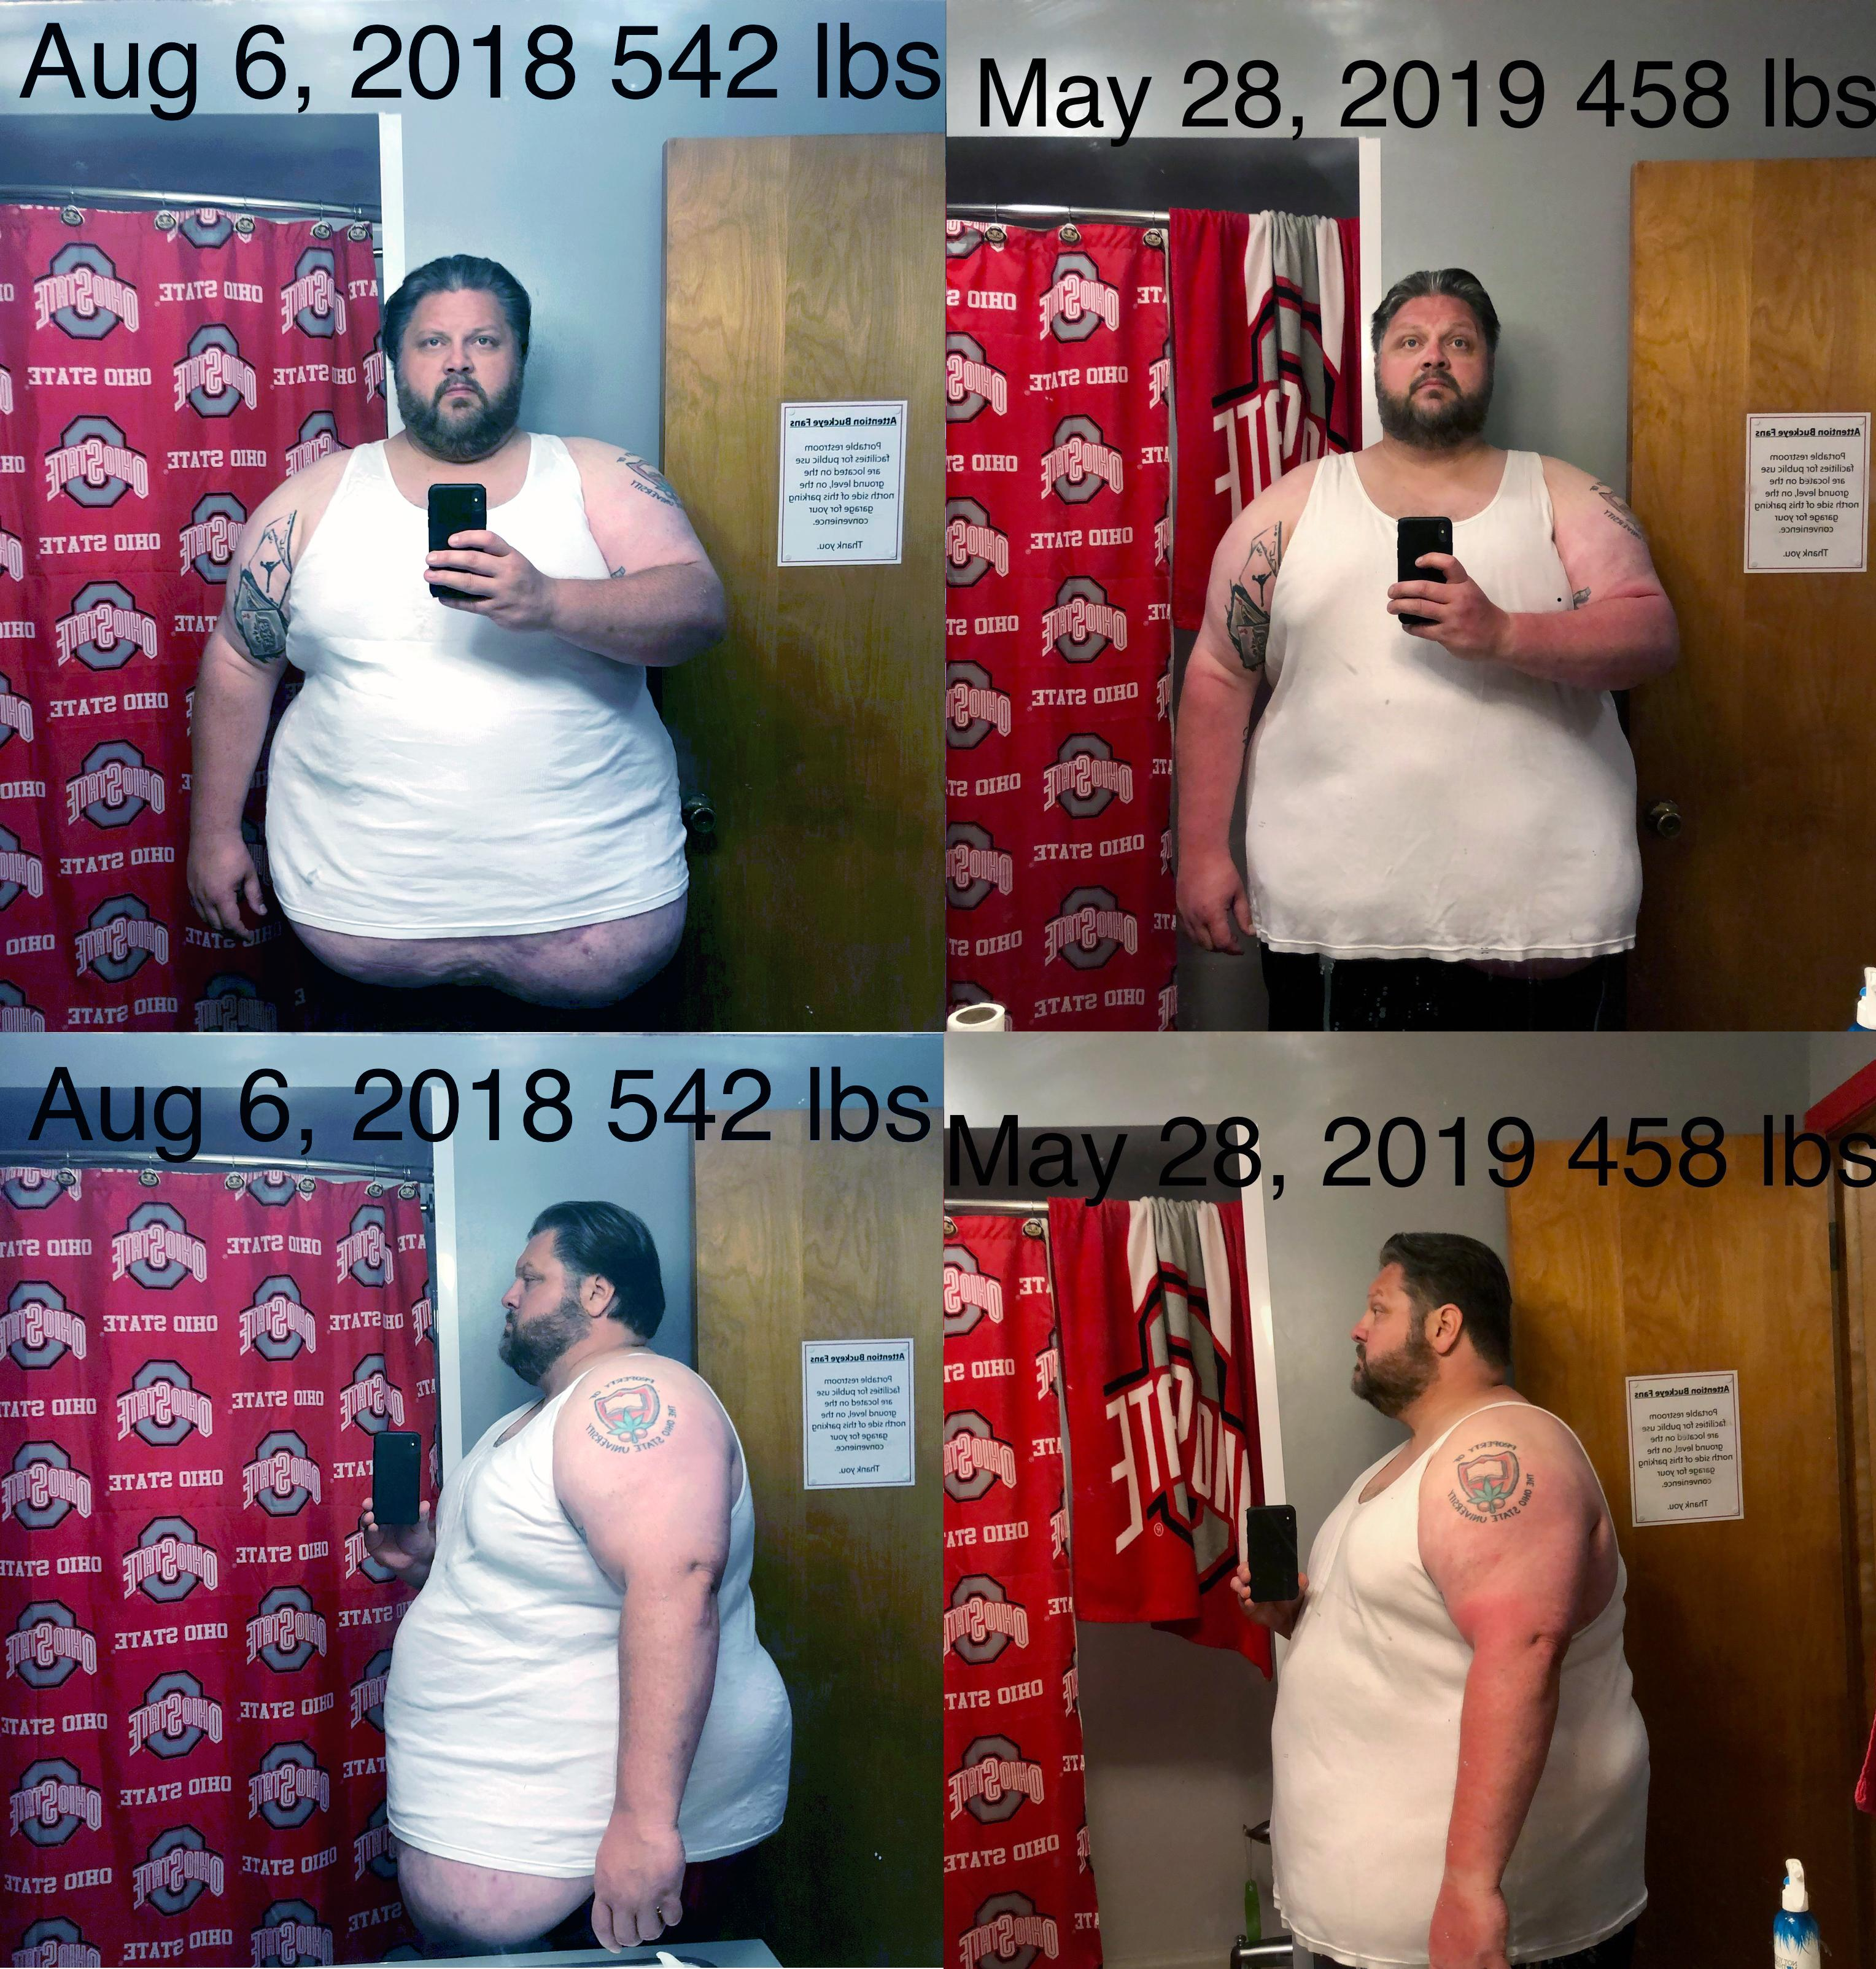 6 foot 1 Male 84 lbs Weight Loss Before and After 542 lbs to 458 lbs